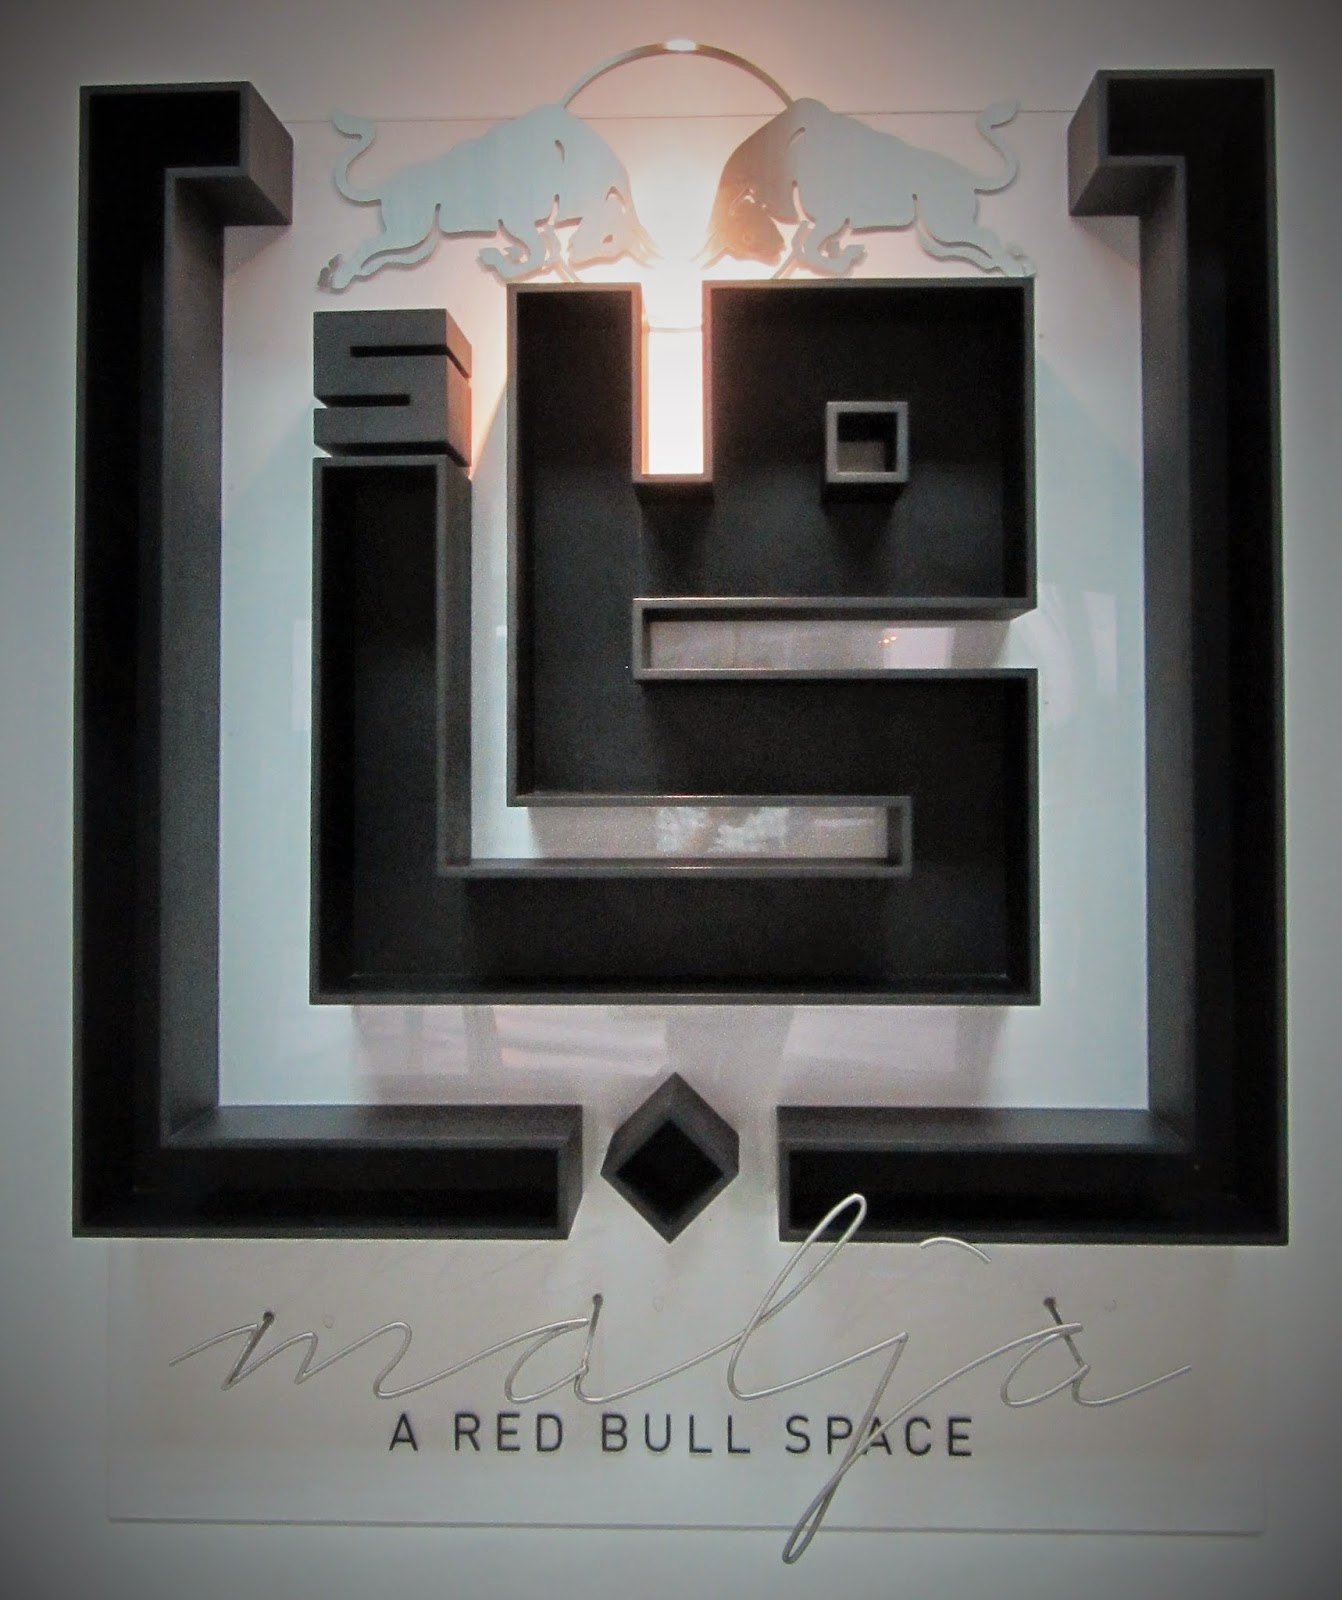 Malja A Red Bull space logo Amwaj Islands Bahrain blog